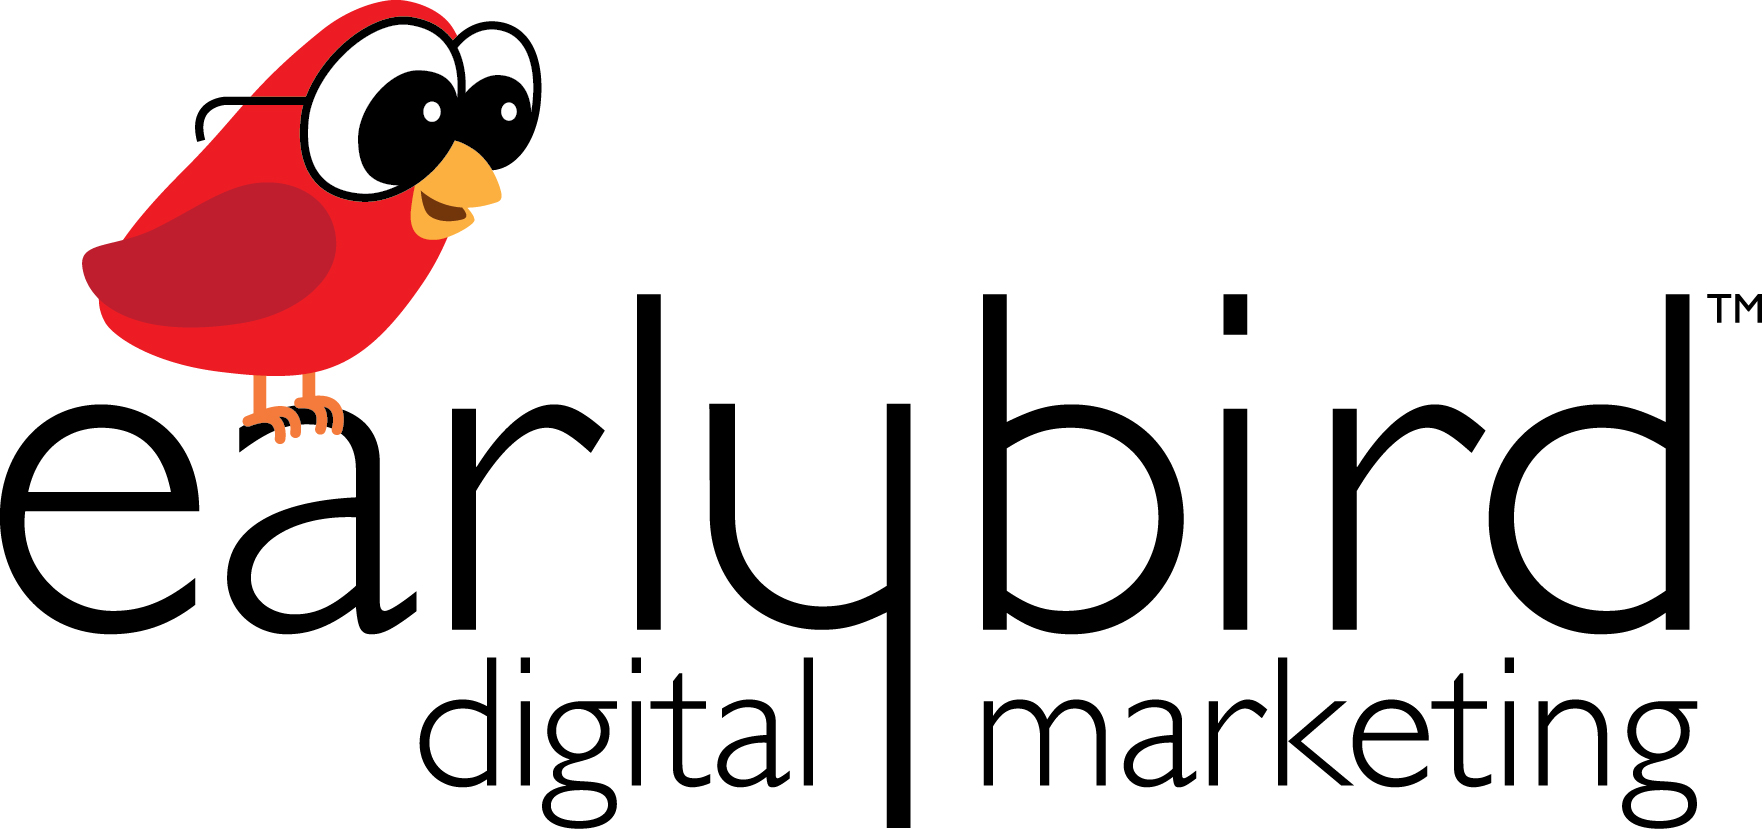 early bird digital marketing